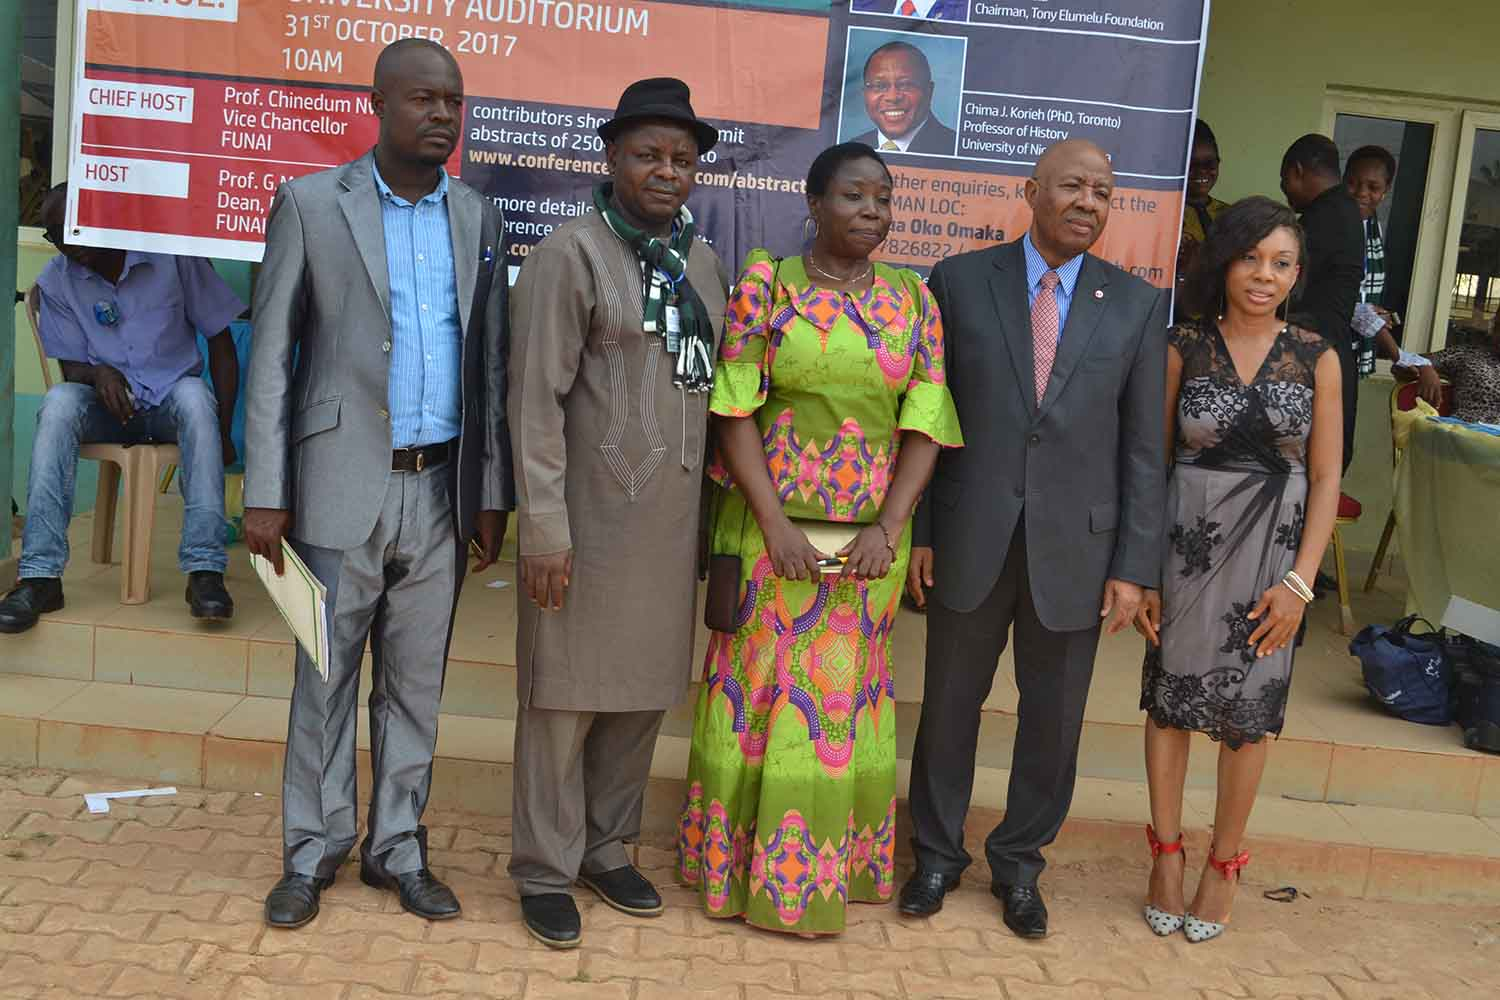 Some members of the organizing committee, the Dean and the CEO of Tony Elumelu Foundation, Chief Emmanuel Nnorom: Dr Arua O. Omaka, Mr Sylvanus Oko, Prof G.M.T Emezue, Chief Emmanuel Nnorom, Ms Ngozi Edeagu